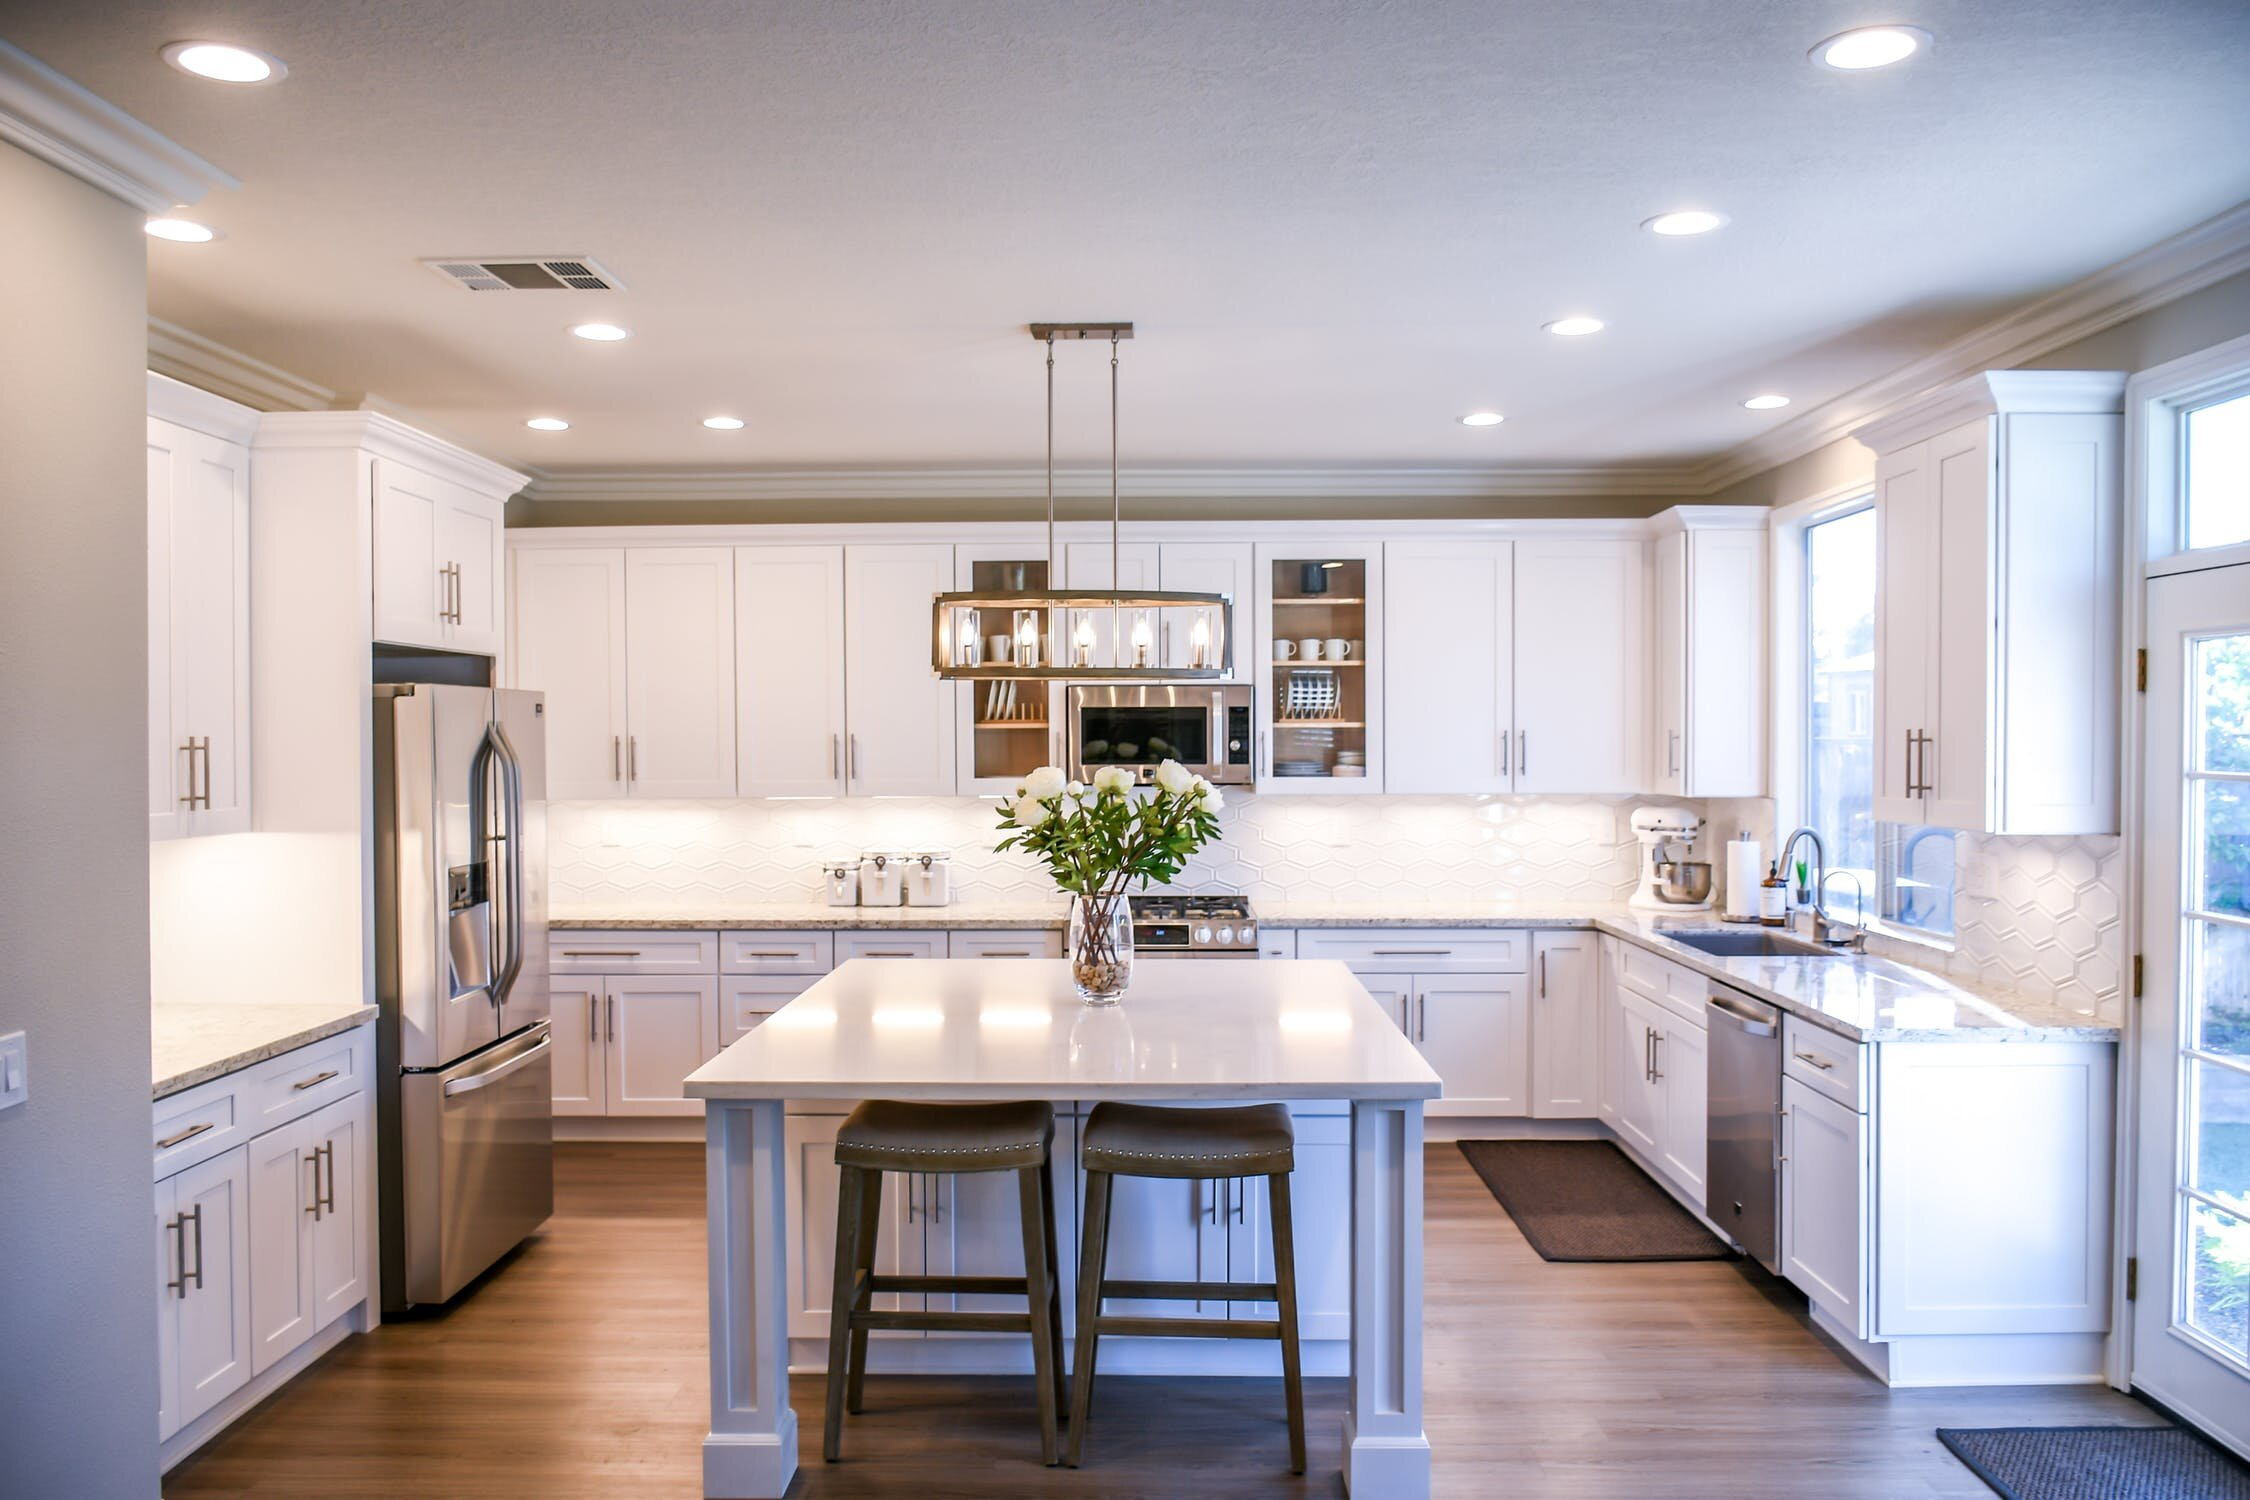 Kitchen Repair Services In Woodland Hills, Ca